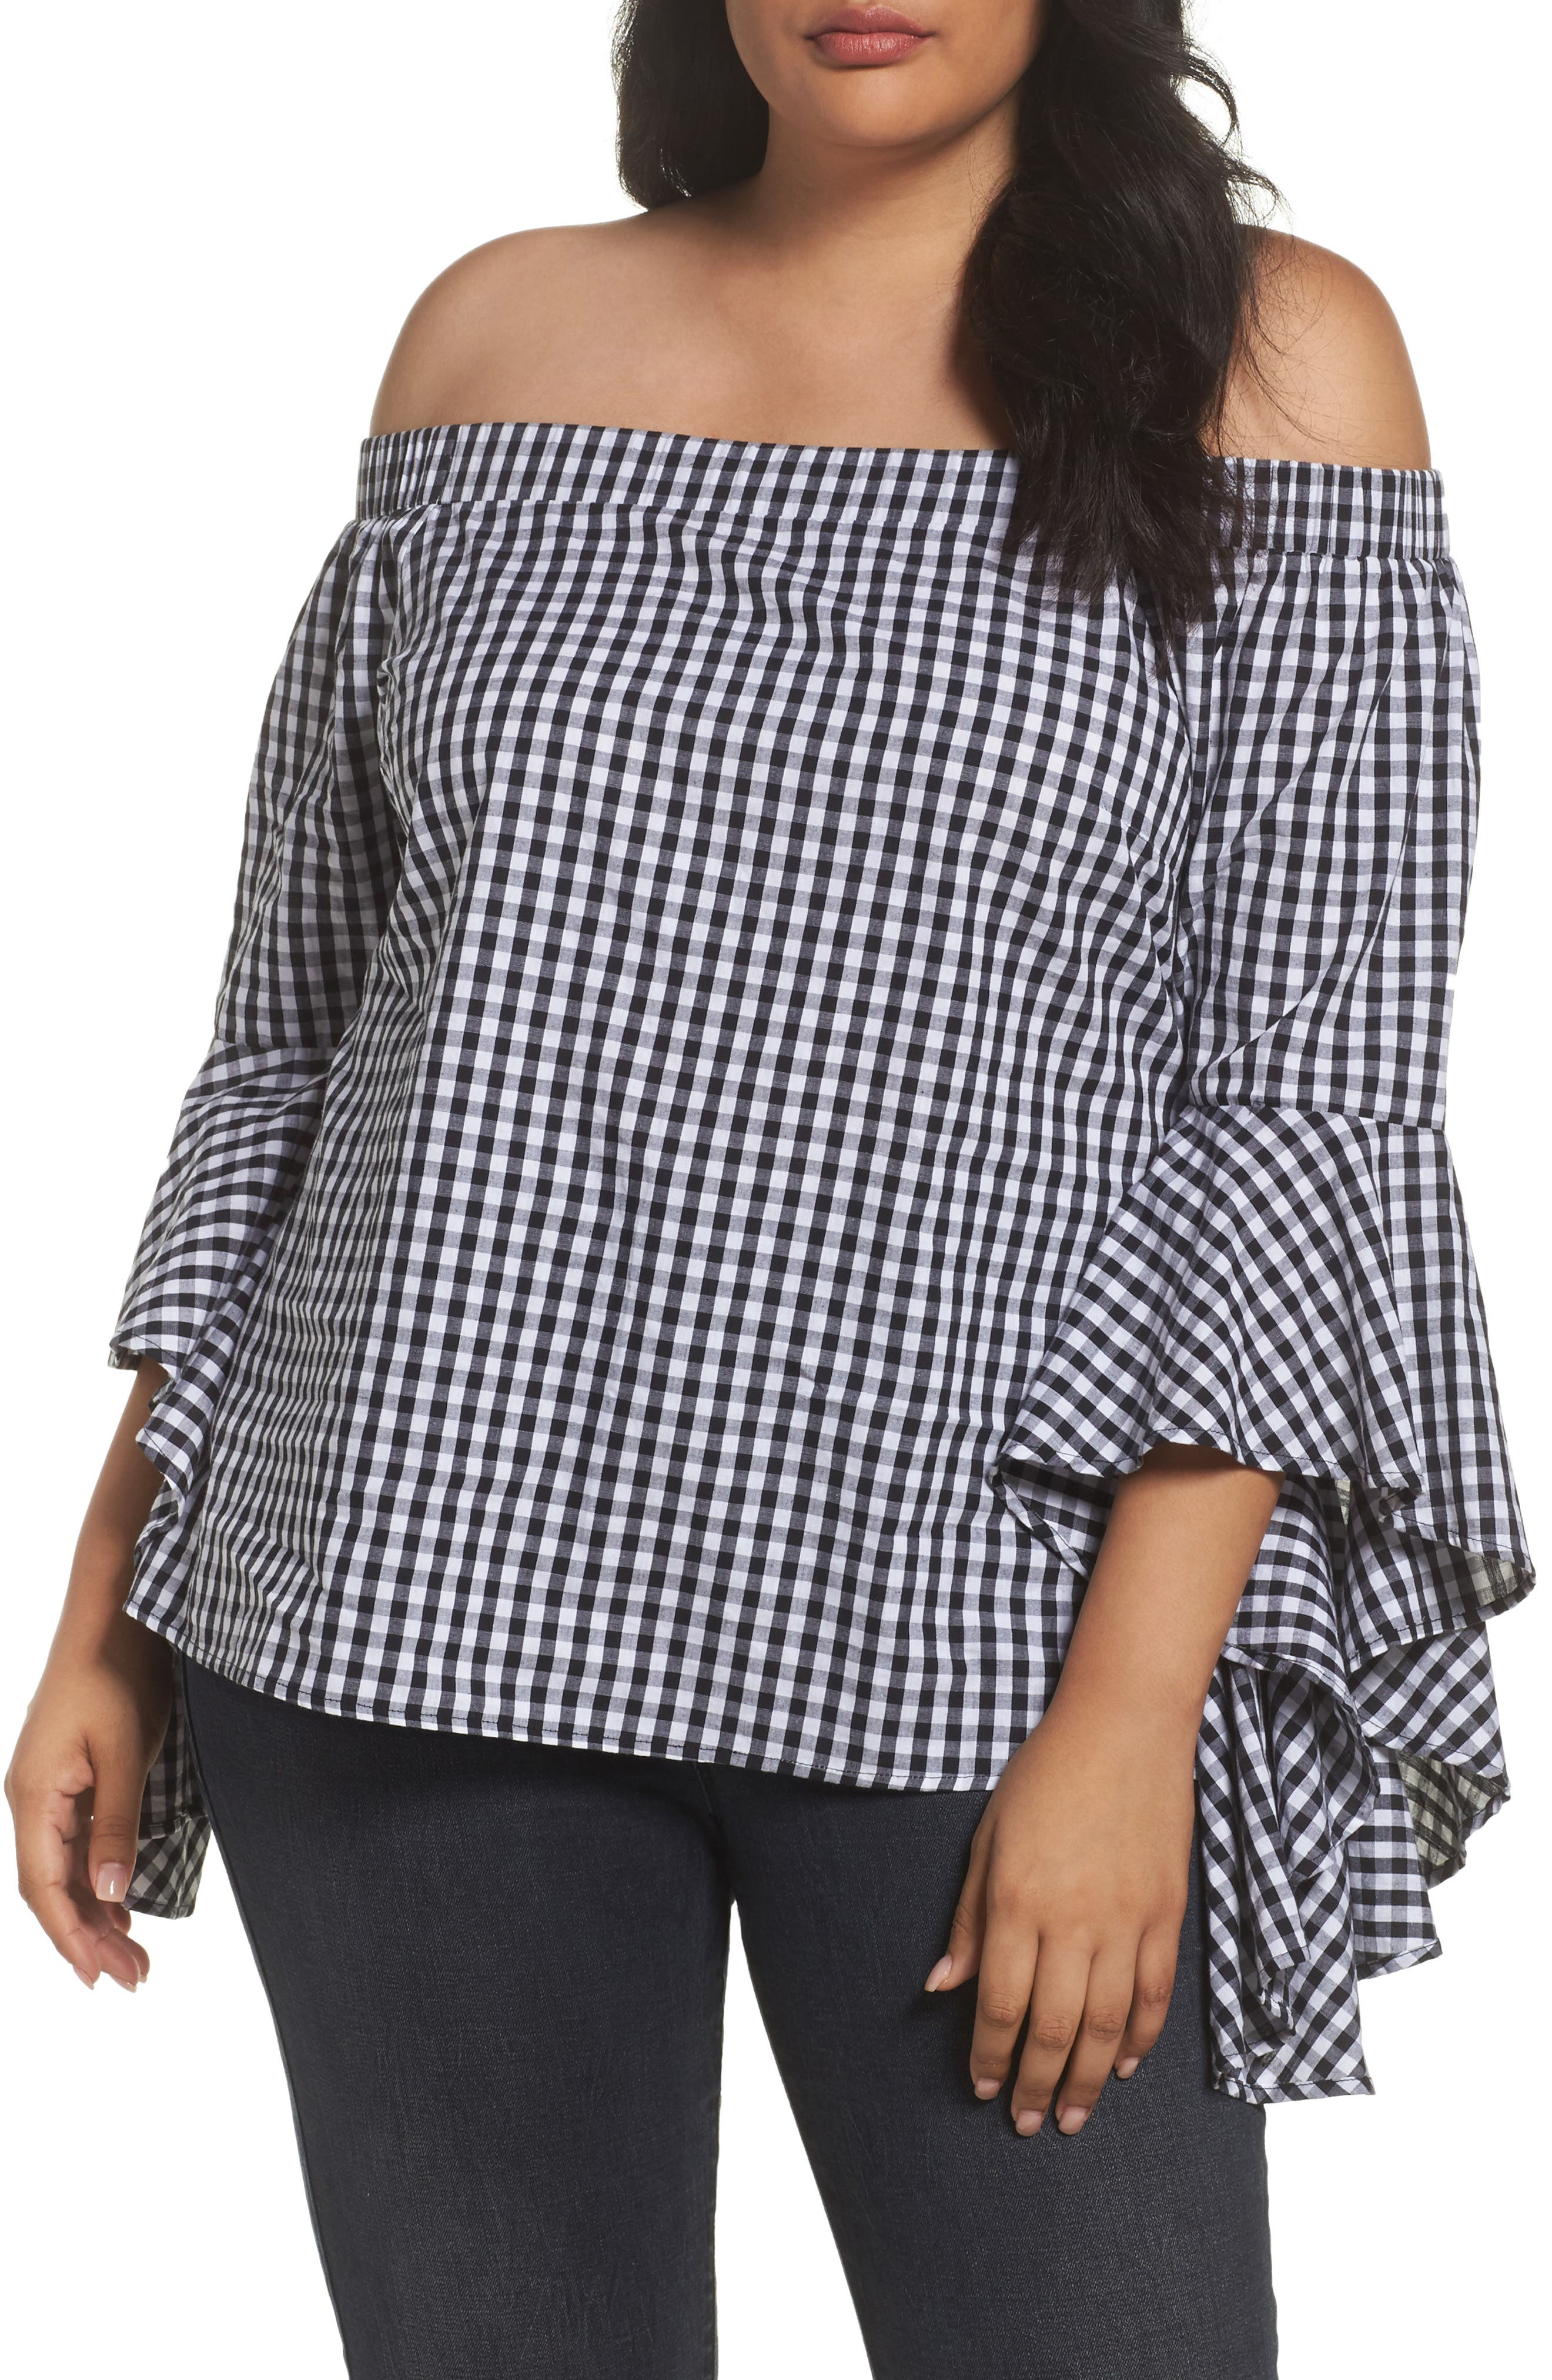 Main Image - City Chic Bell Sleeve Off the Shoulder Shirt (Plus Size)